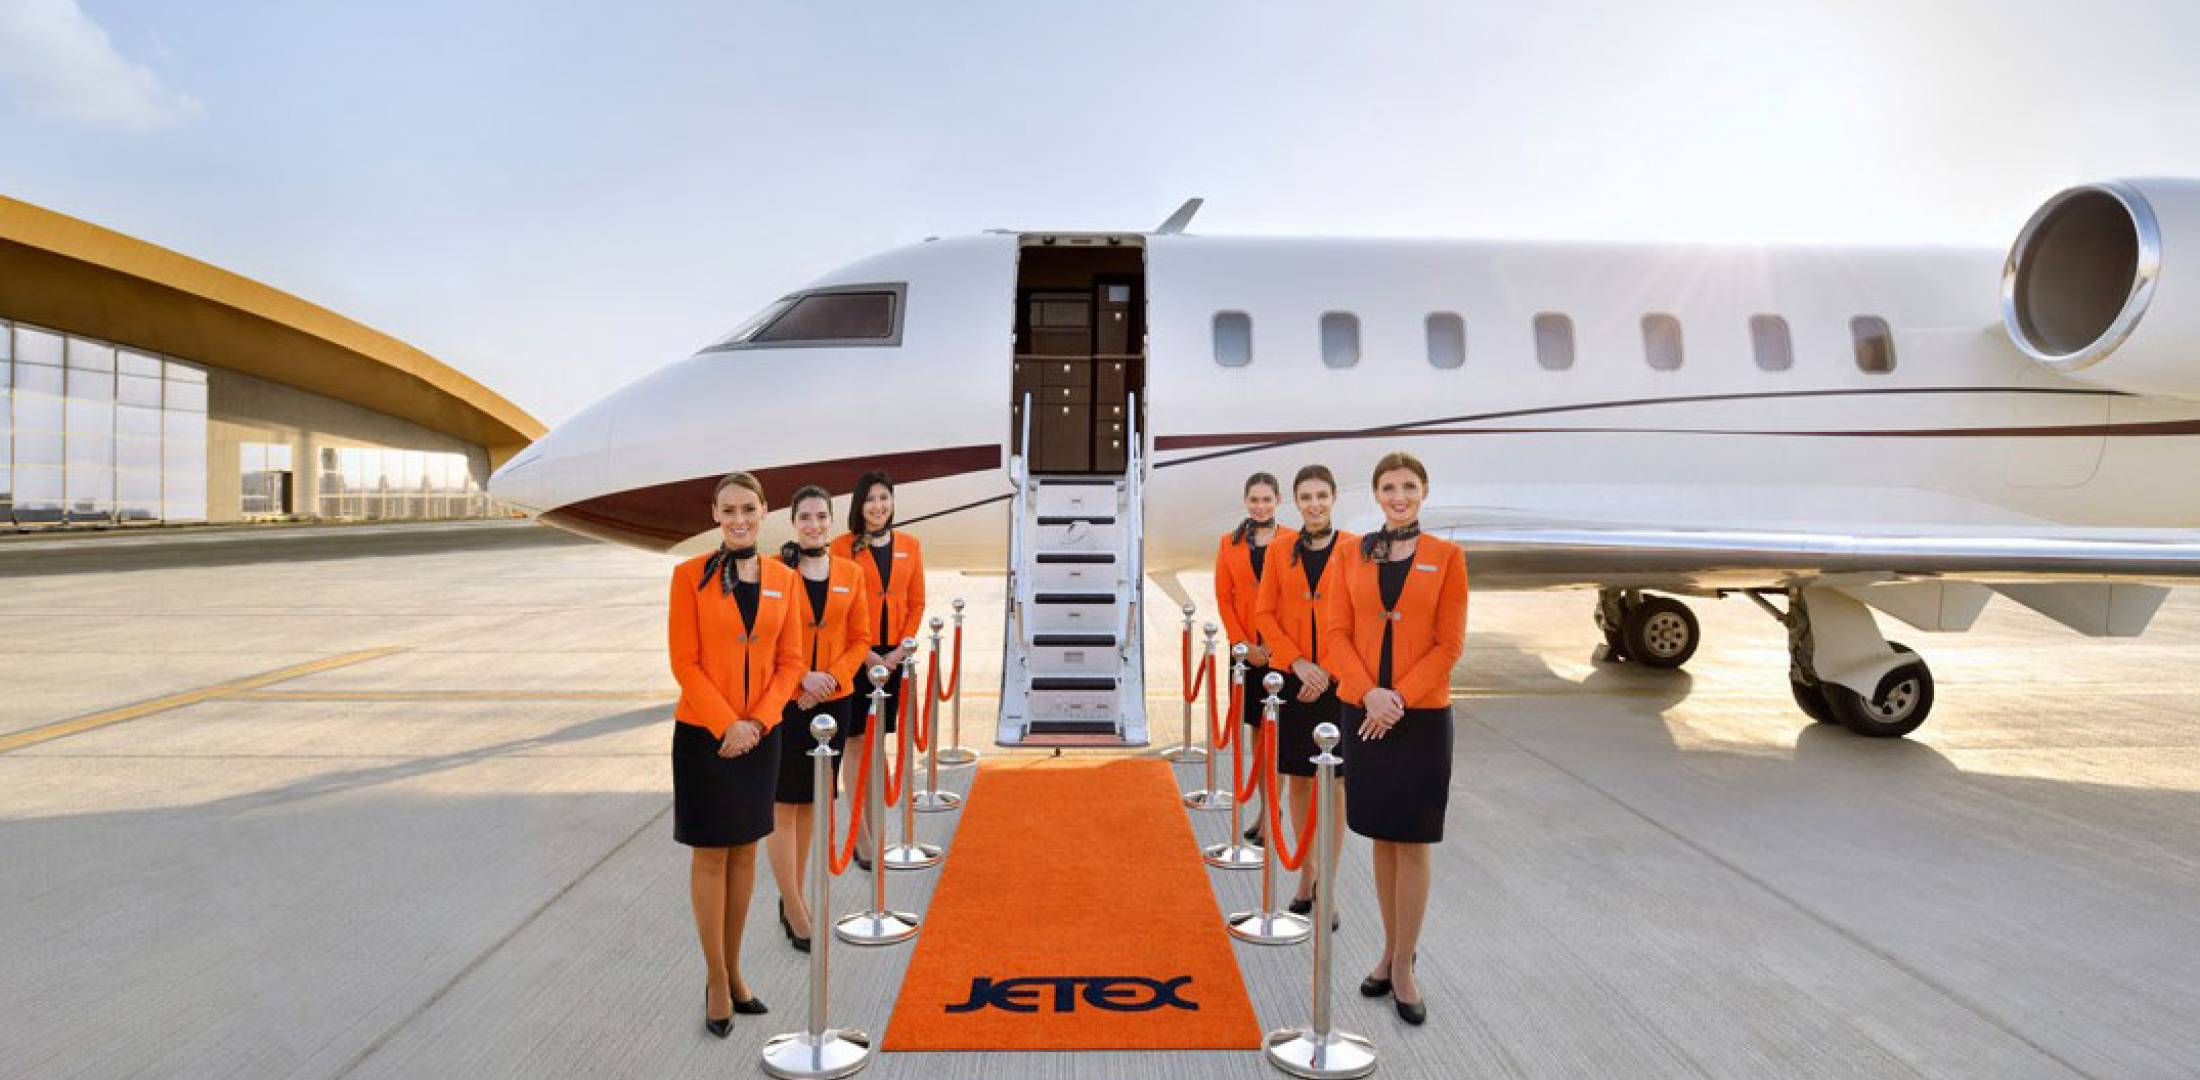 Jetex staff lined up by private jet